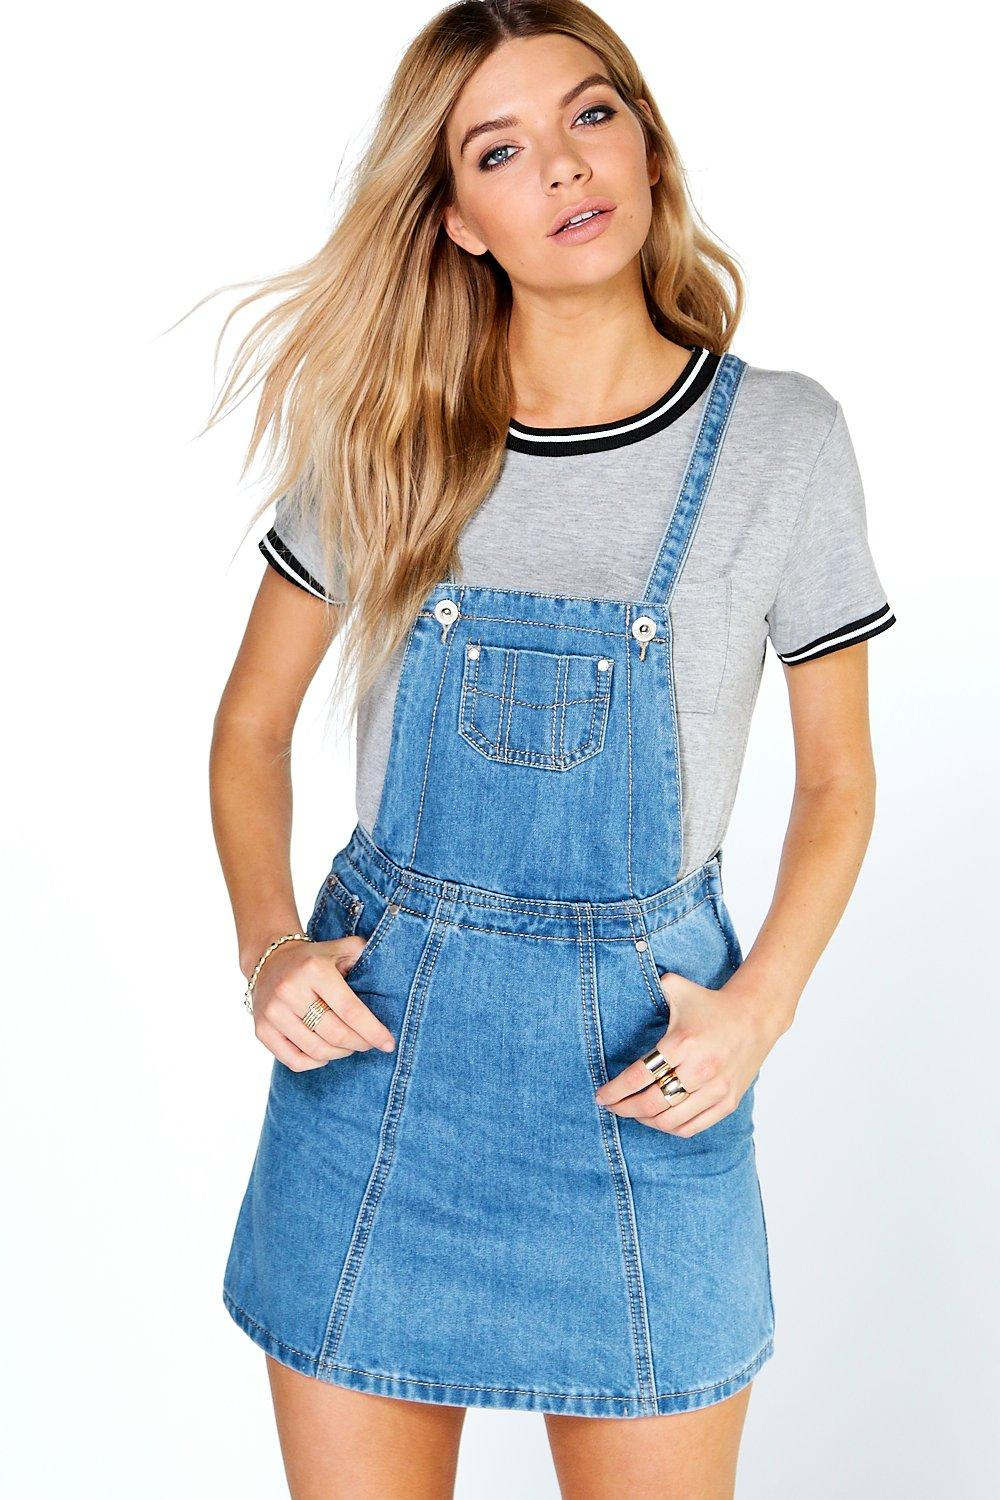 Brilliant While Pinafore Style May Seem Akin To Apron Style Dresses  Home Grown Fashion For You, The Thing About Pinafores Is That They Can Look Sensational If You Know How To Work Them If You Are One Of Those Girls Or Women  Then Denim Is